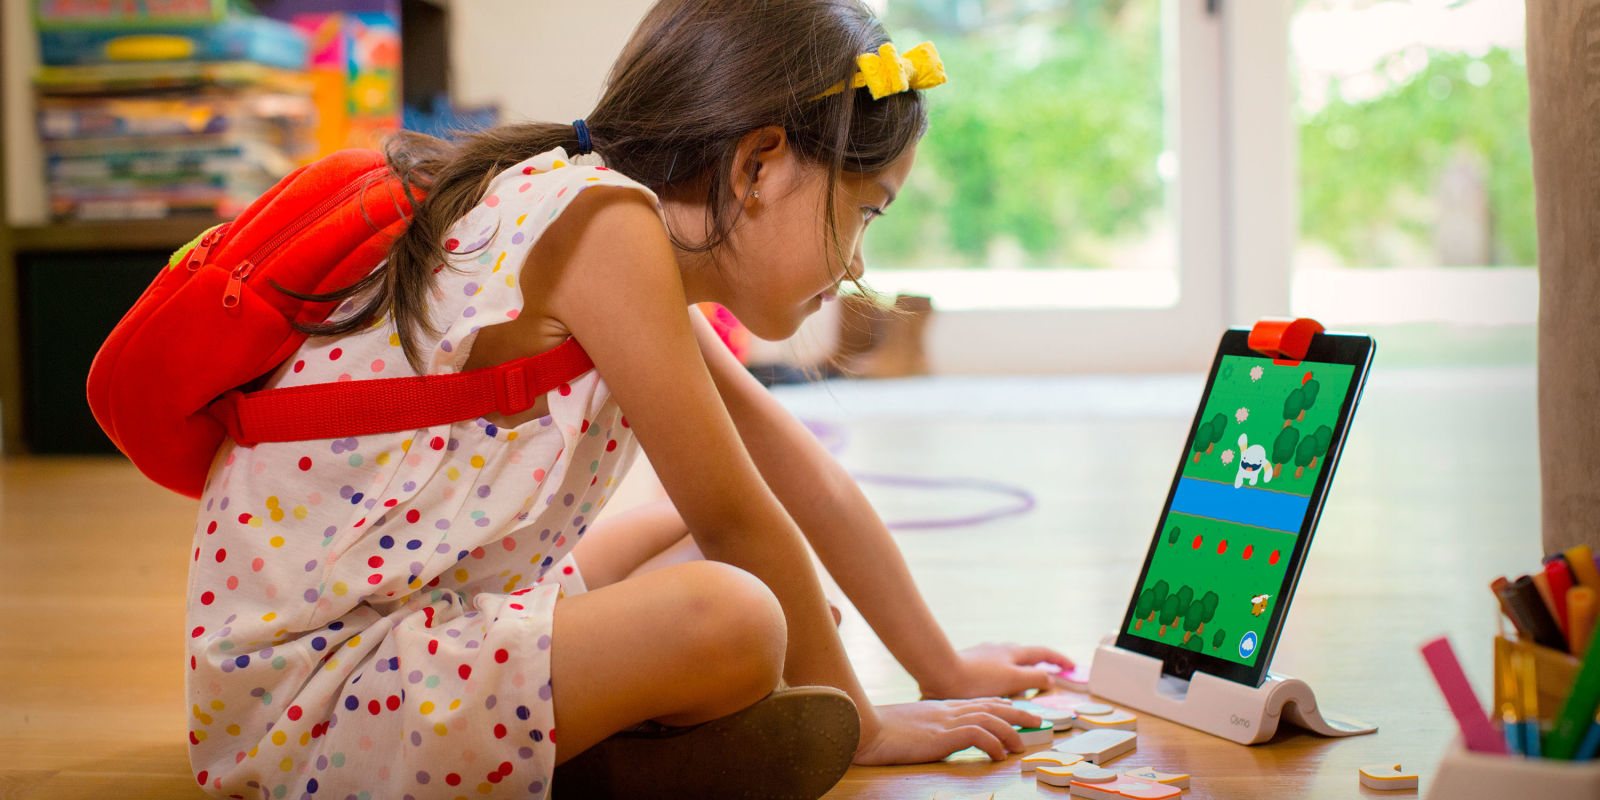 Best Coding Toys Reviewed : Best coding toys and games for kids help your child